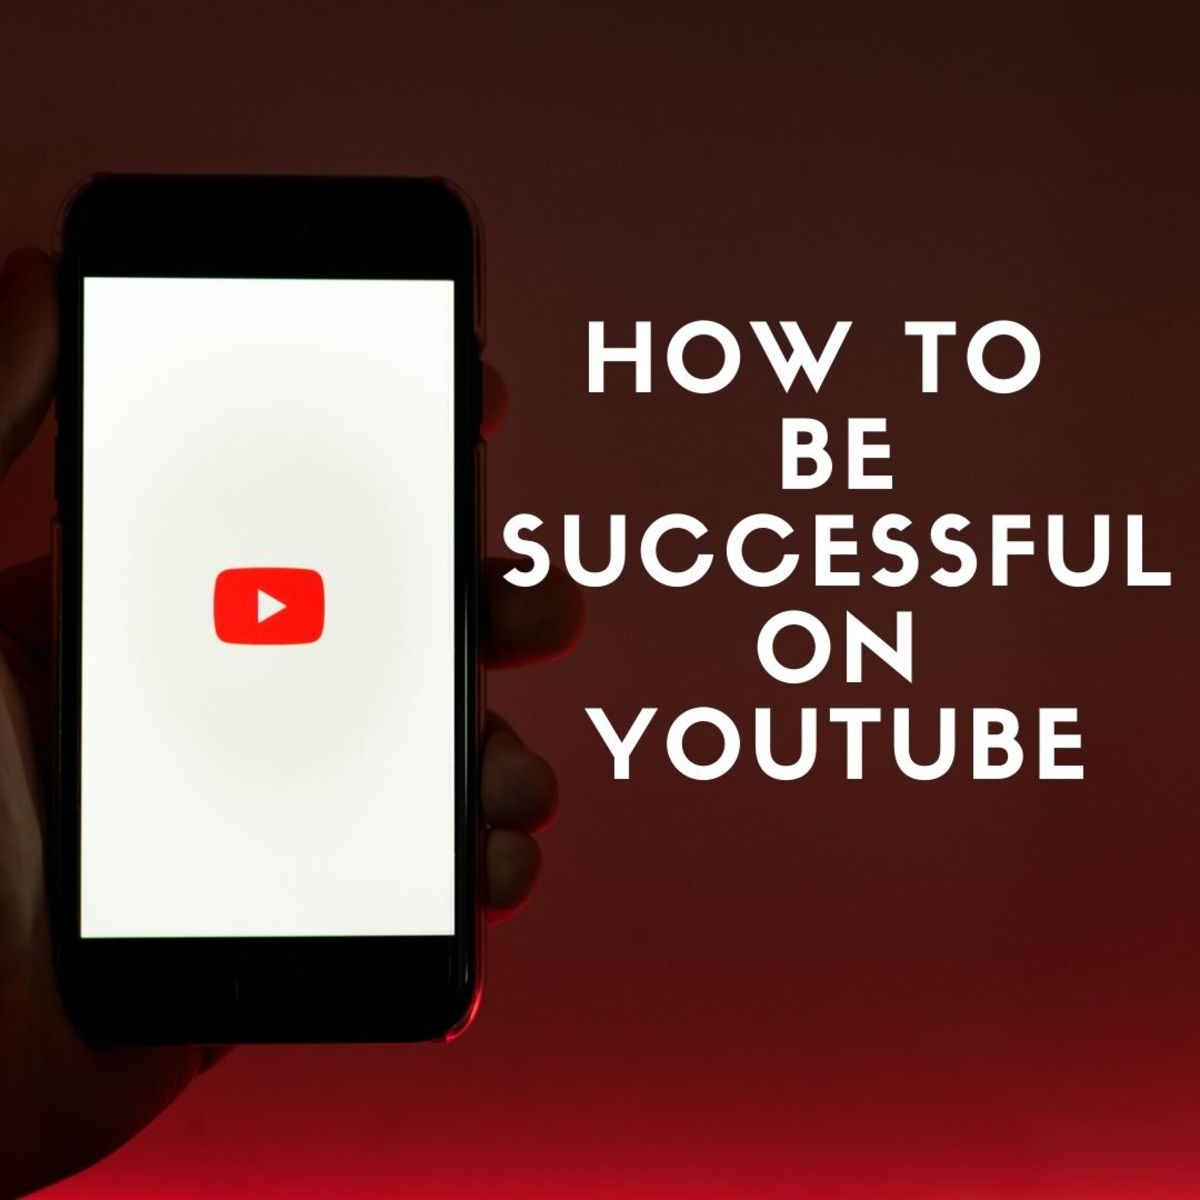 Learn tips and tricks for being your own boss on YouTube.